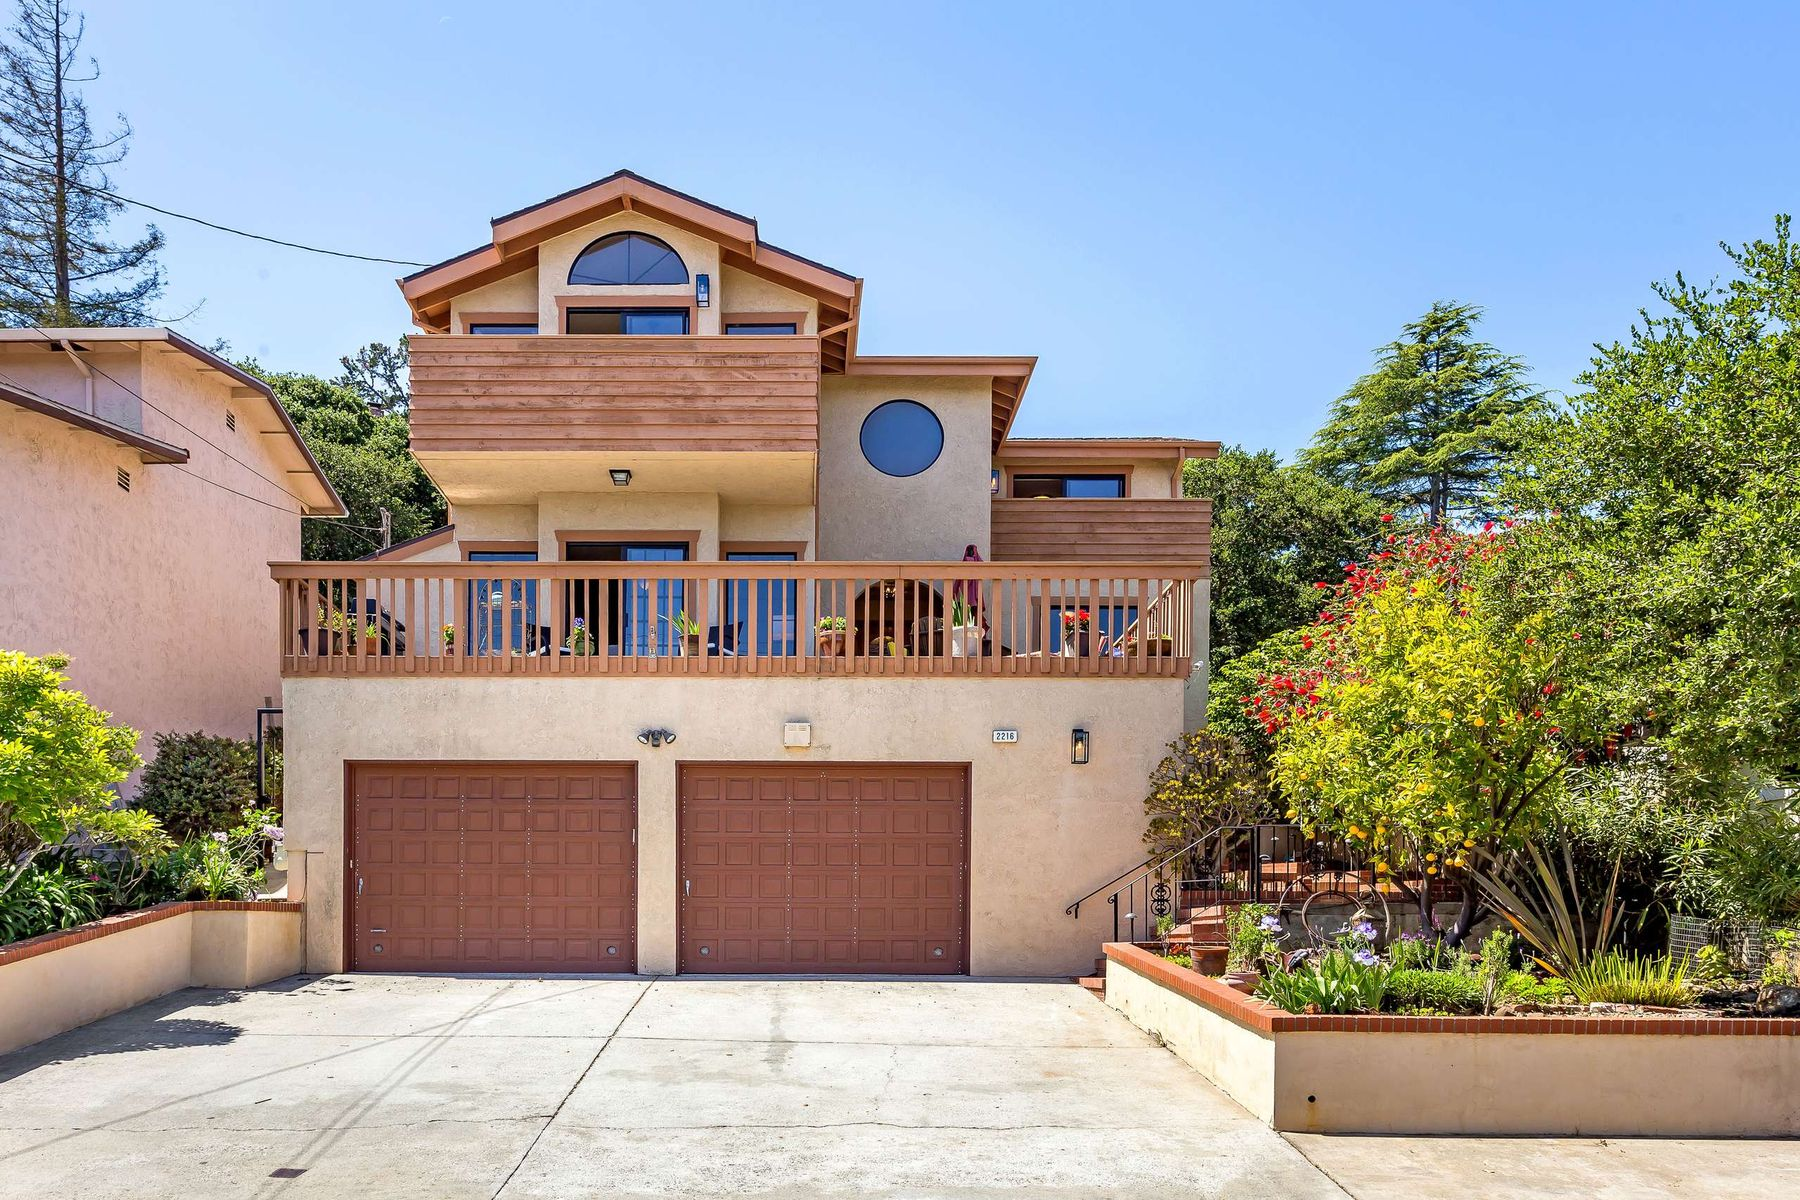 Single Family Home for Active at Custom Built Home With Bay Views 2216 Semeria Ave Belmont, California 94002 United States